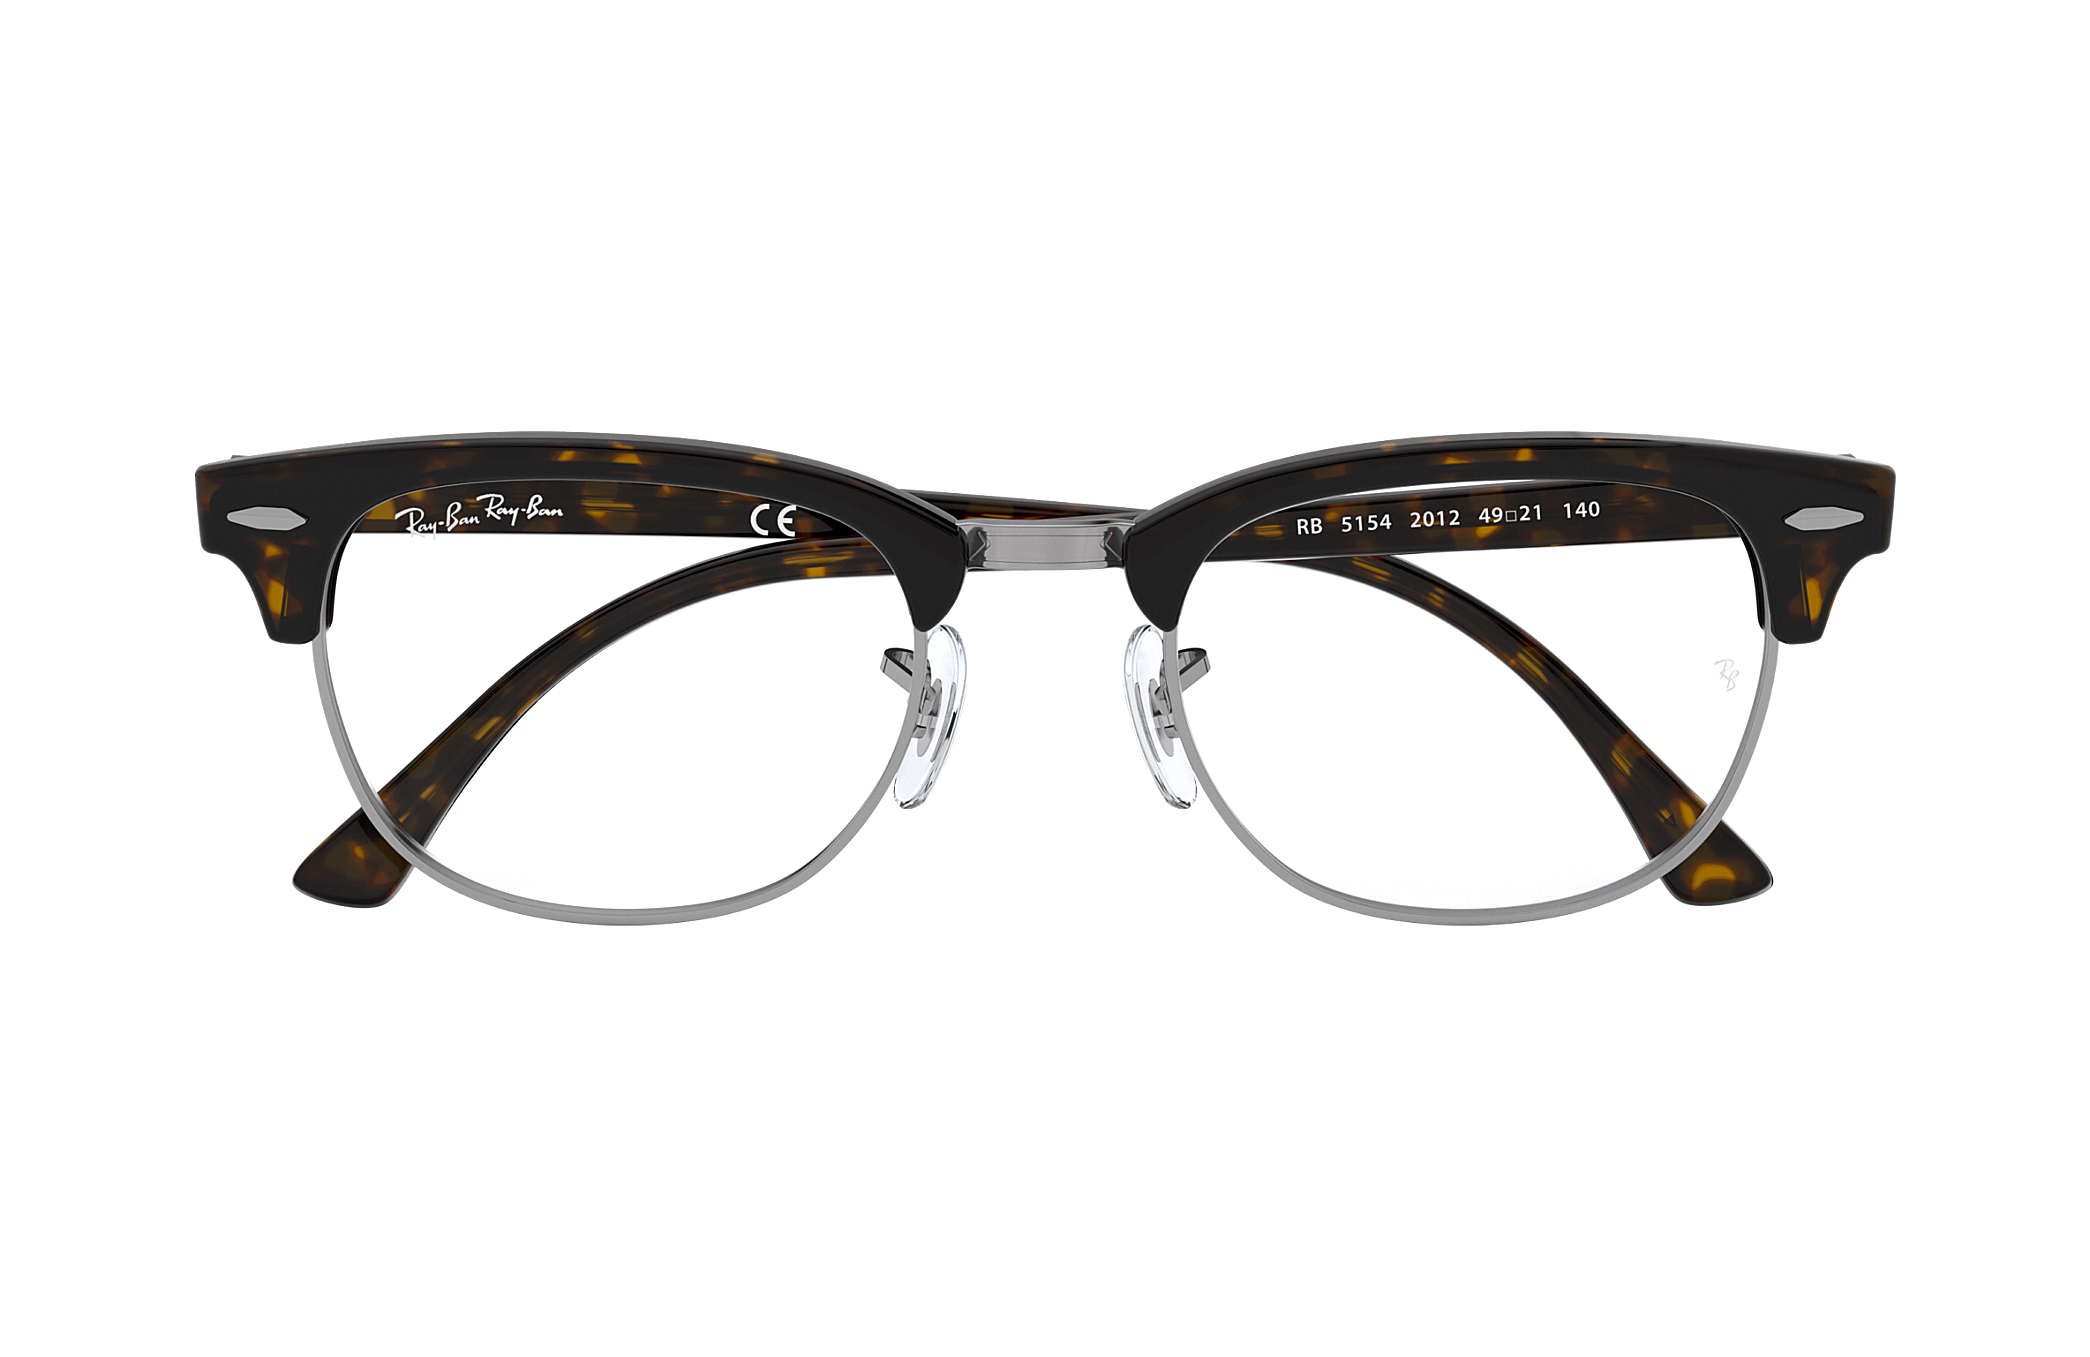 dd05c2c7ac Ray-Ban prescription glasses Clubmaster Optics RB5154 Tortoise ...